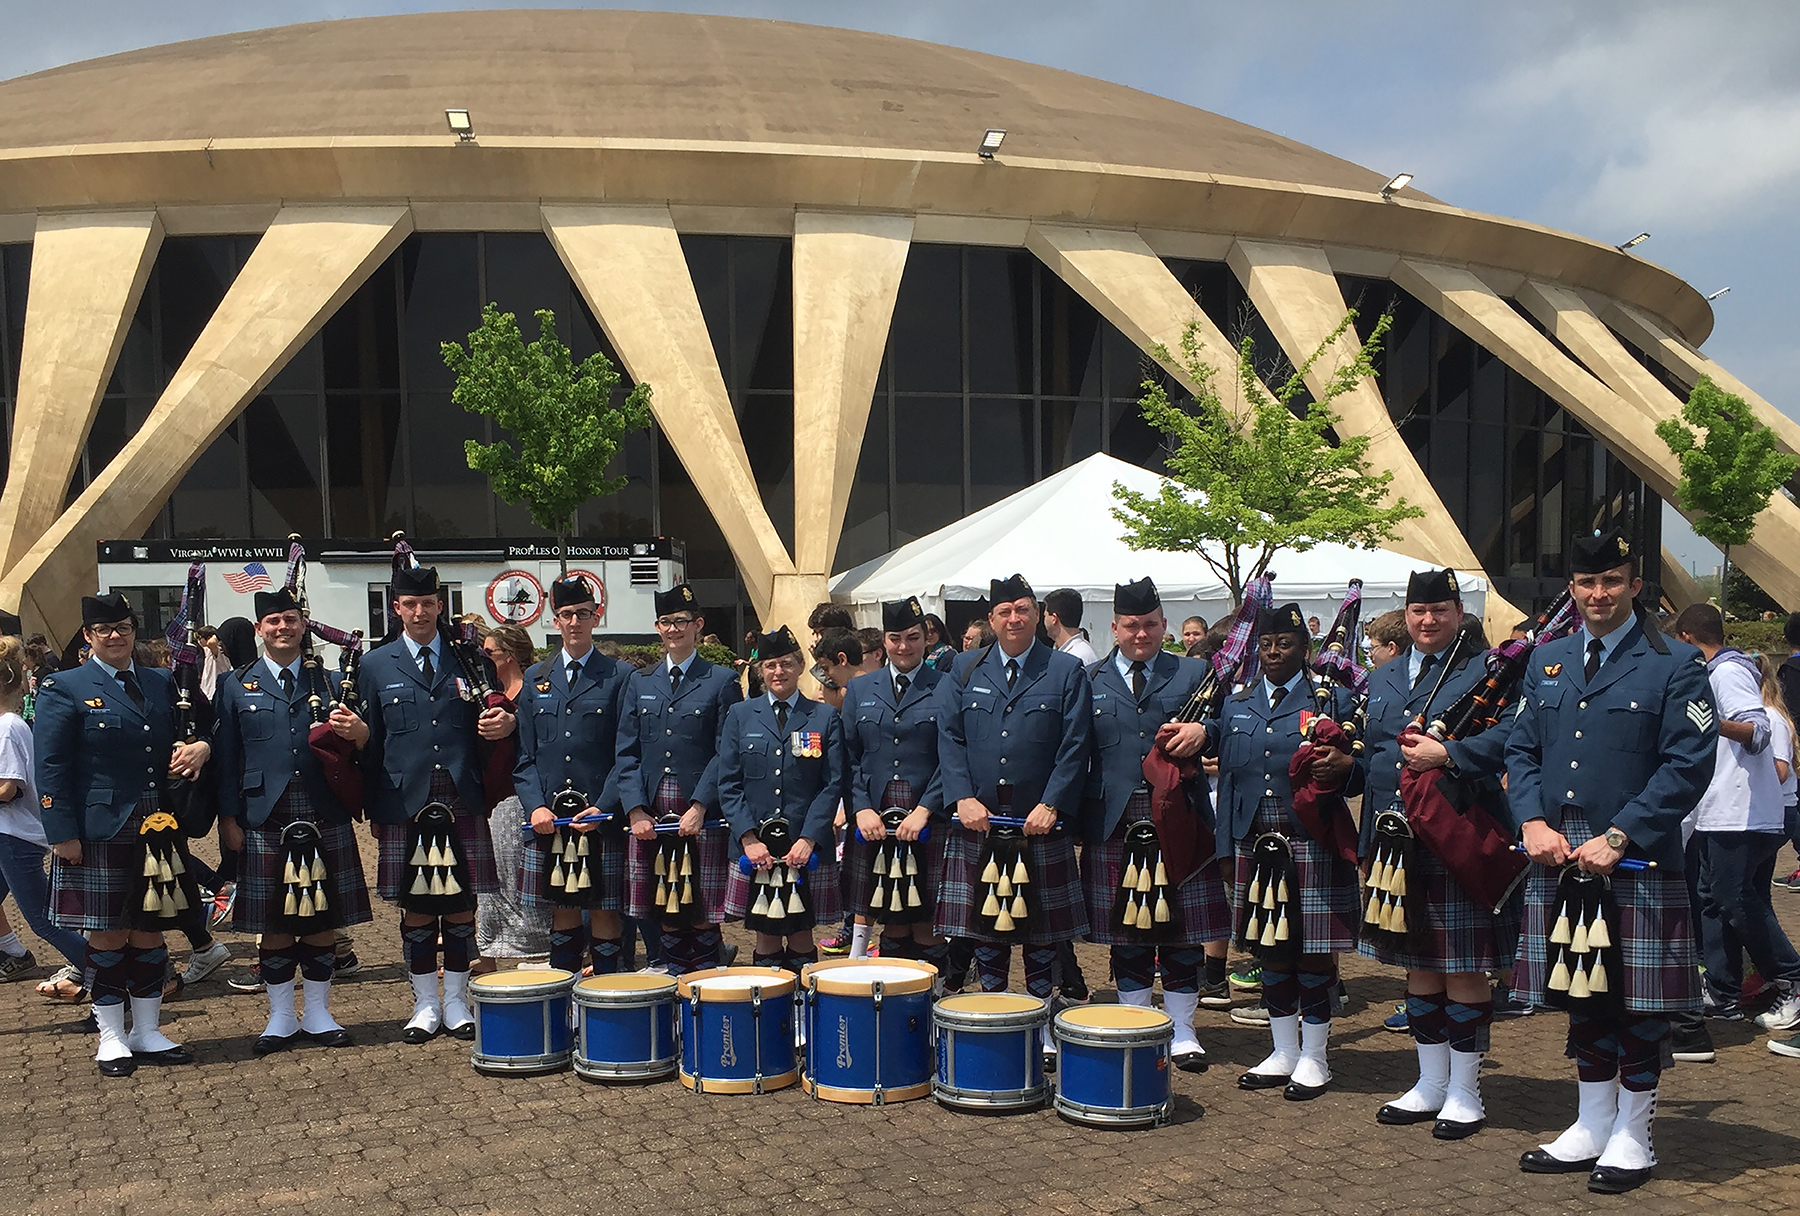 During the Virginia International Tattoo, the 12 Wing Pipes and Drums from Shearwater, Nova Scotia, gather for a photograph outside the Scope Centre in Norfolk, Virginia, after their matinee performance on April 28, 2016. PHOTO: Mark MacKisoc